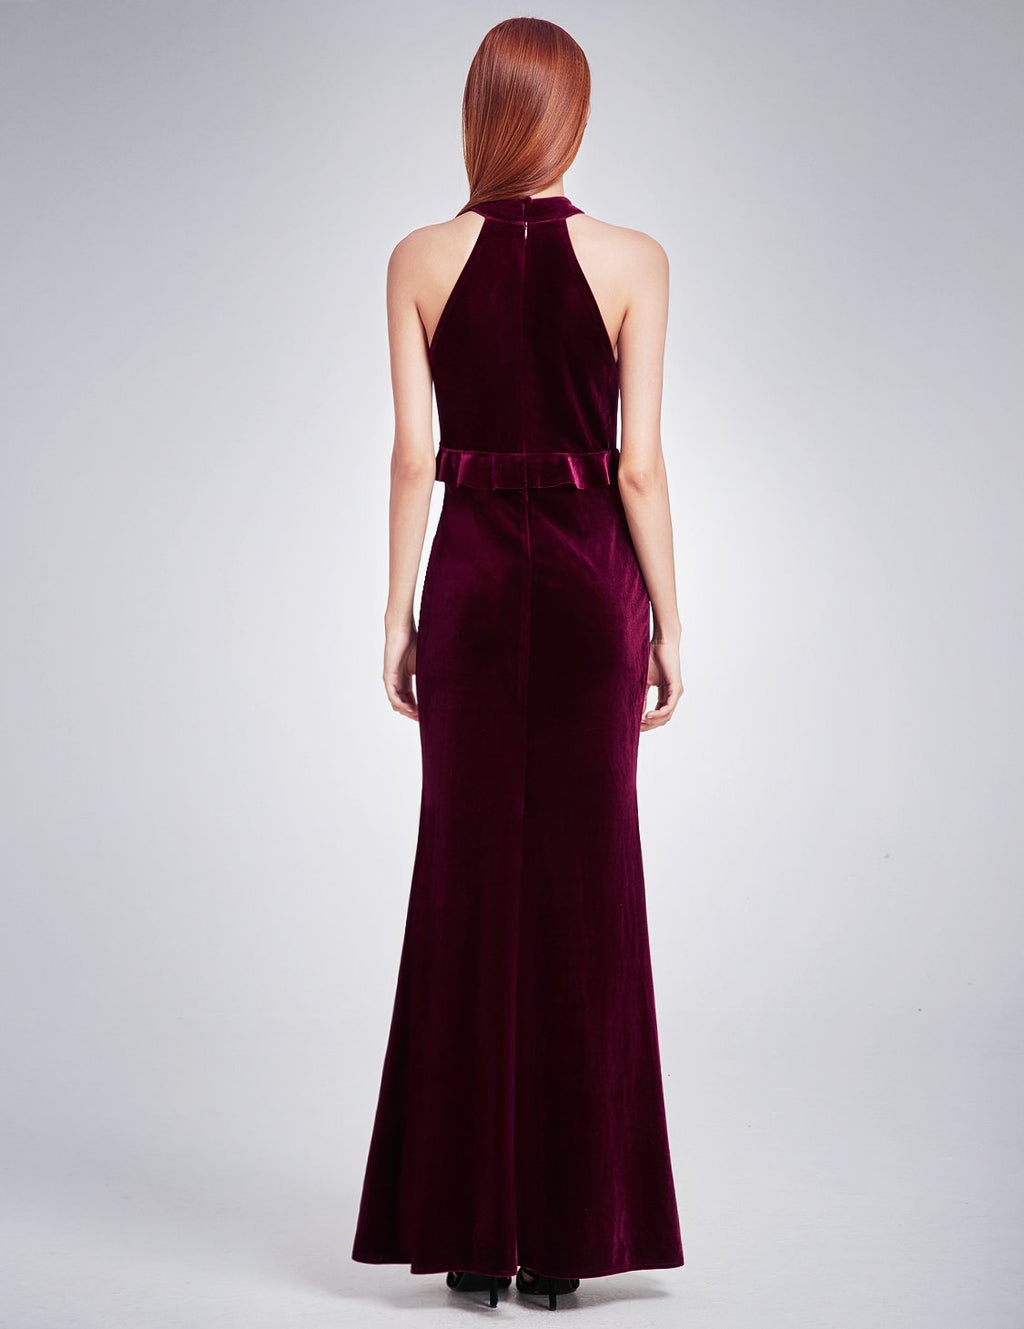 High Collar Long Maxi Dress Burgundy